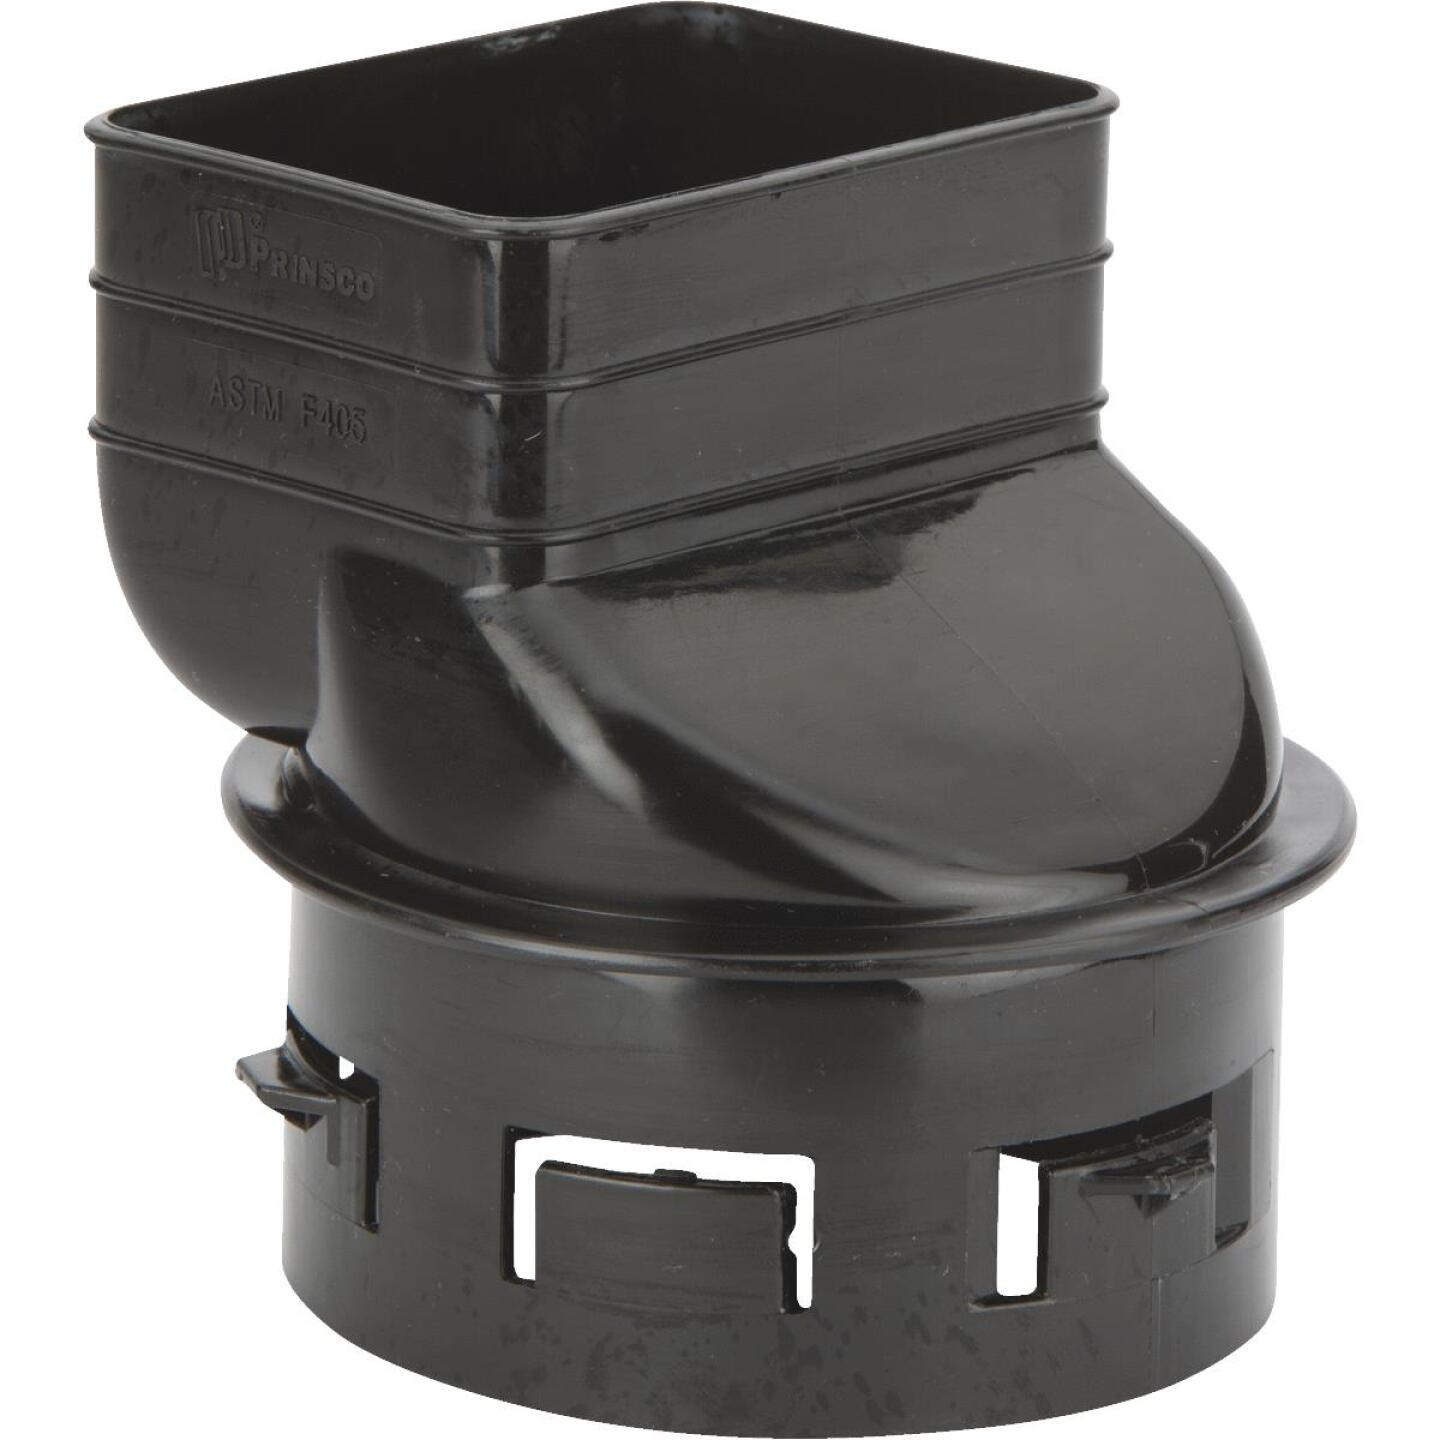 NDA Prinsco 2 In. X 3 In. X 3 In. Or 4 In. Offset Downspout Adapter Image 1